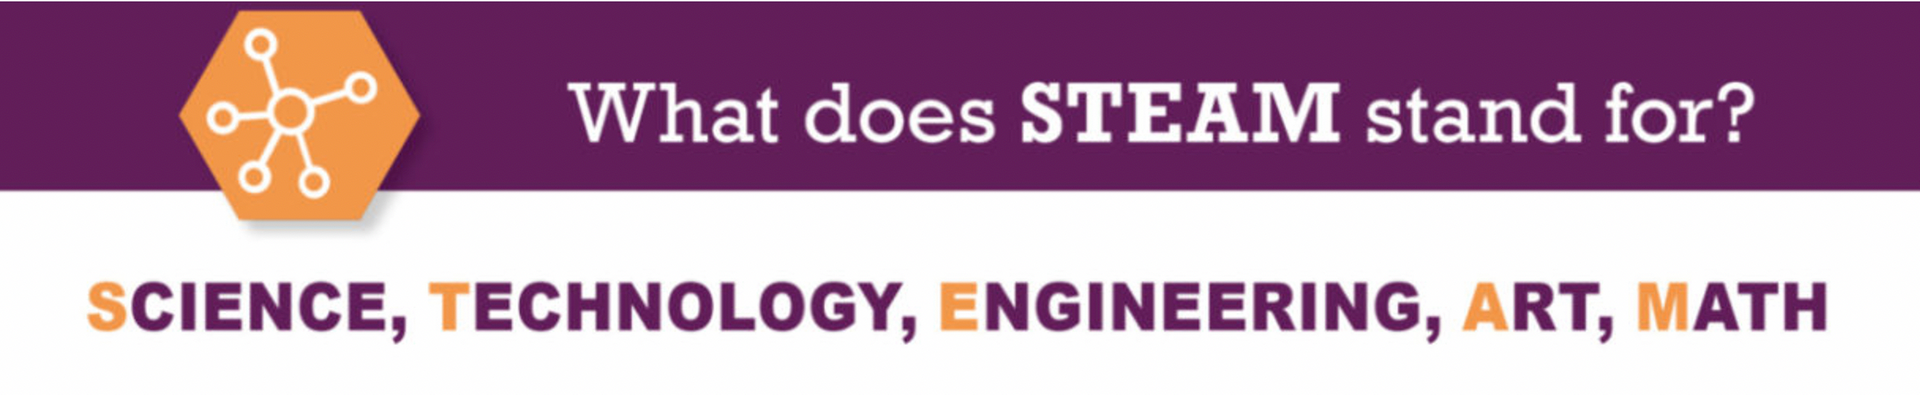 What does STEAM stand for? Science, Technology, Engineering, Arts, Mathematics